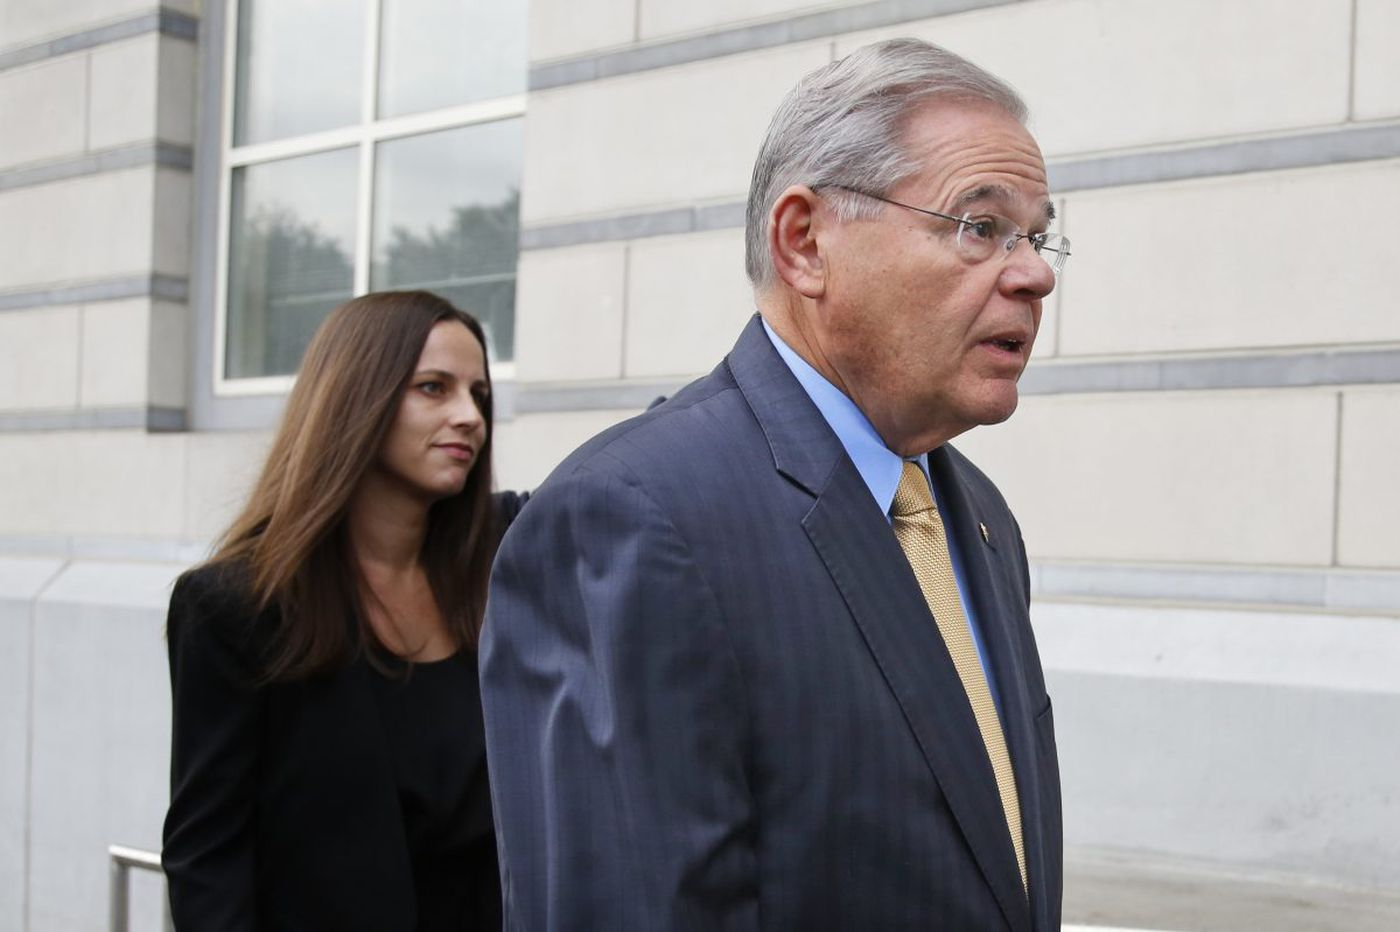 Feds: Menendez sold Senate office 'for a life of luxury he couldn't afford'